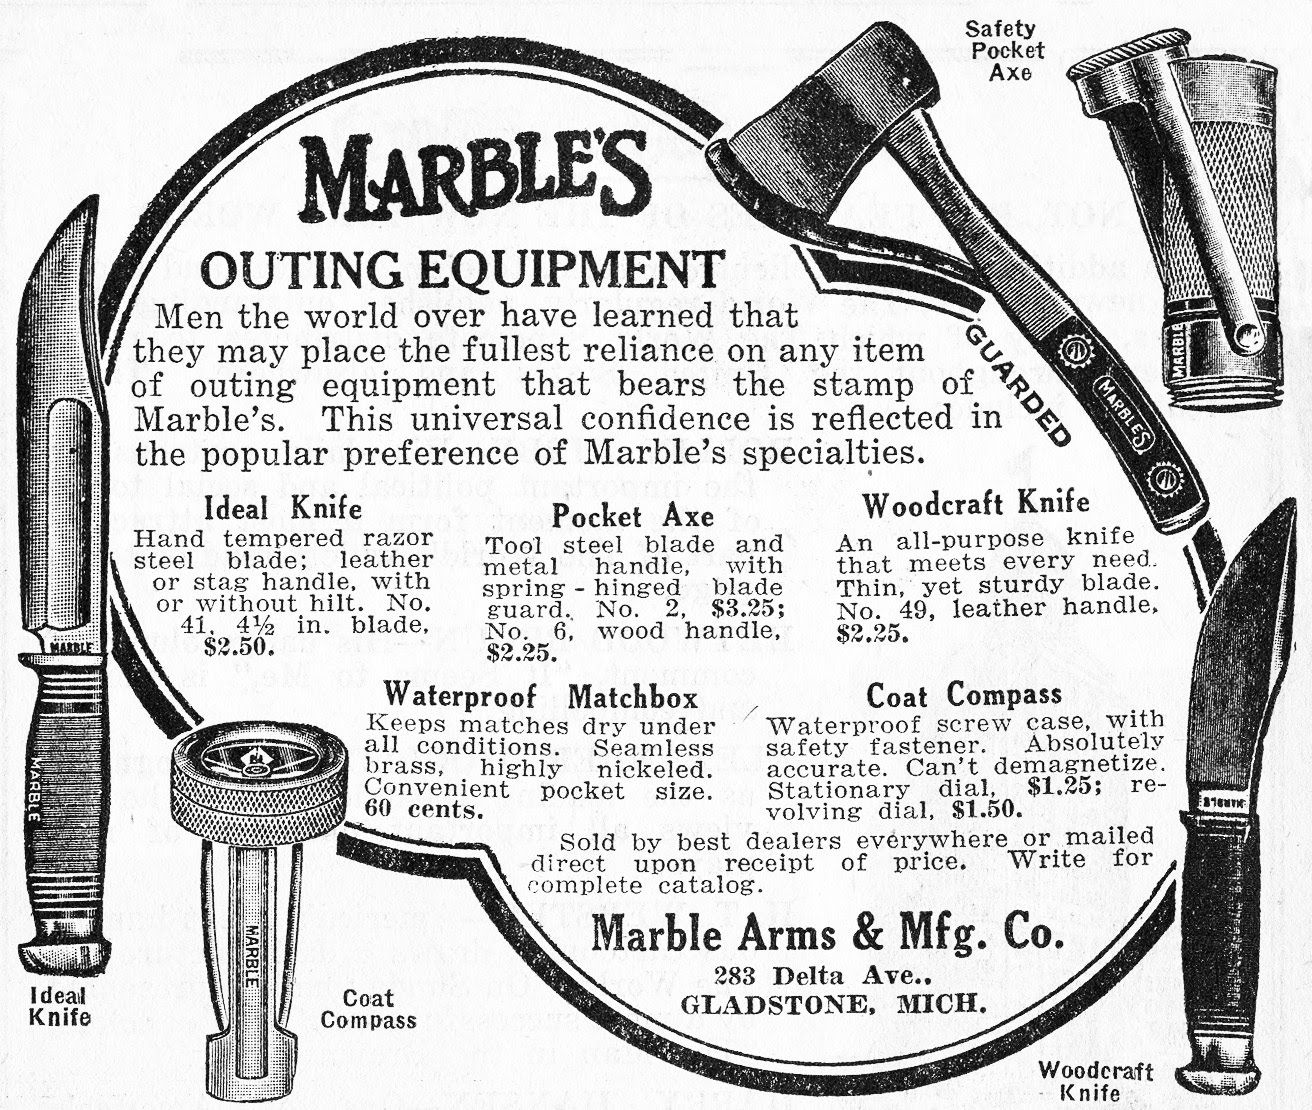 Marbles Outing Equipment Started In The Up Knife